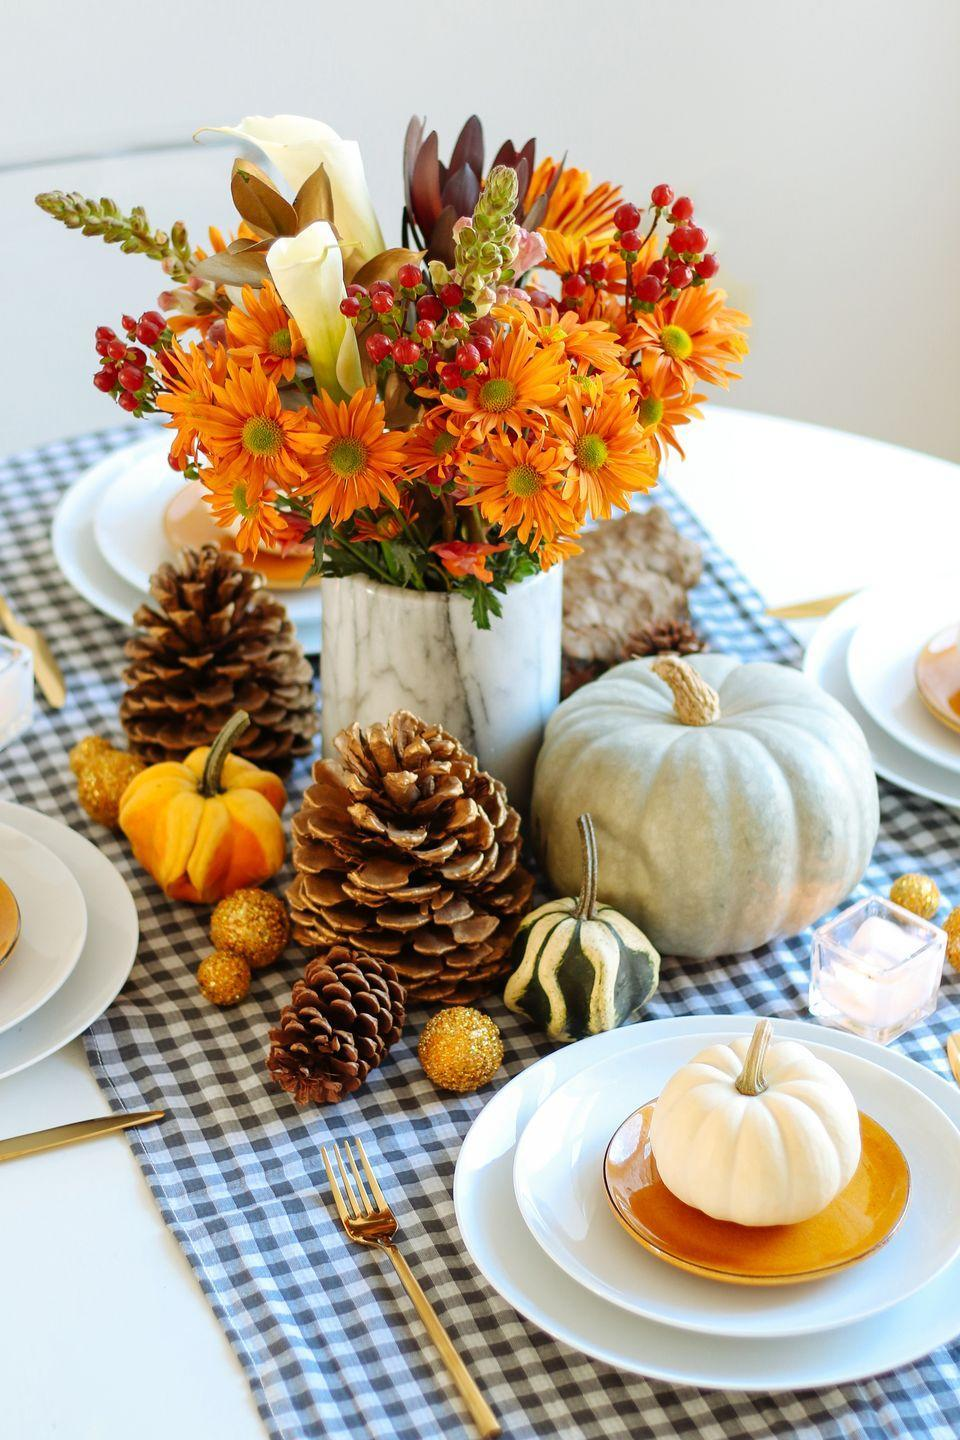 """<p>Add some simple country charm to your Thanksgiving table with a blue and white gingham table runner accessorized with pinecones, white pumpkins, gourds, and the Julia centerpiece, $40, by <a href=""""https://go.redirectingat.com?id=74968X1596630&url=https%3A%2F%2Furbanstems.com%2F&sref=https%3A%2F%2Fwww.countryliving.com%2Fentertaining%2Fg2130%2Fthanksgiving-centerpieces%2F"""" rel=""""nofollow noopener"""" target=""""_blank"""" data-ylk=""""slk:UrbanStems"""" class=""""link rapid-noclick-resp"""">UrbanStems</a>. </p><p><a class=""""link rapid-noclick-resp"""" href=""""https://www.amazon.com/artificial-flowers/b?ie=UTF8&node=14087331&tag=syn-yahoo-20&ascsubtag=%5Bartid%7C10050.g.2130%5Bsrc%7Cyahoo-us"""" rel=""""nofollow noopener"""" target=""""_blank"""" data-ylk=""""slk:SHOP FAUX FLOWERS"""">SHOP FAUX FLOWERS</a></p>"""